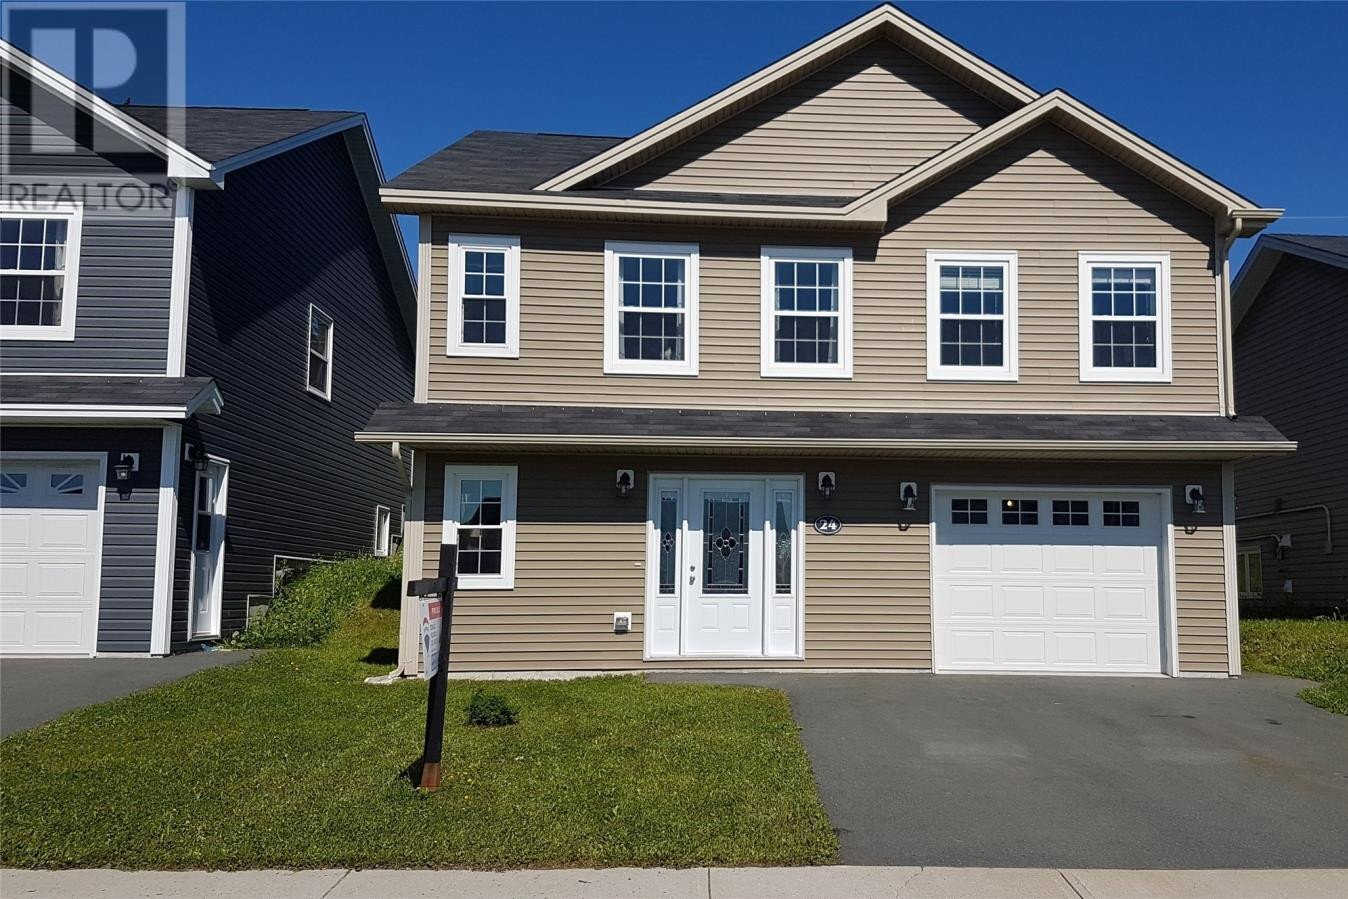 House for sale at 24 Rotary Dr St.john's Newfoundland - MLS: 1223264